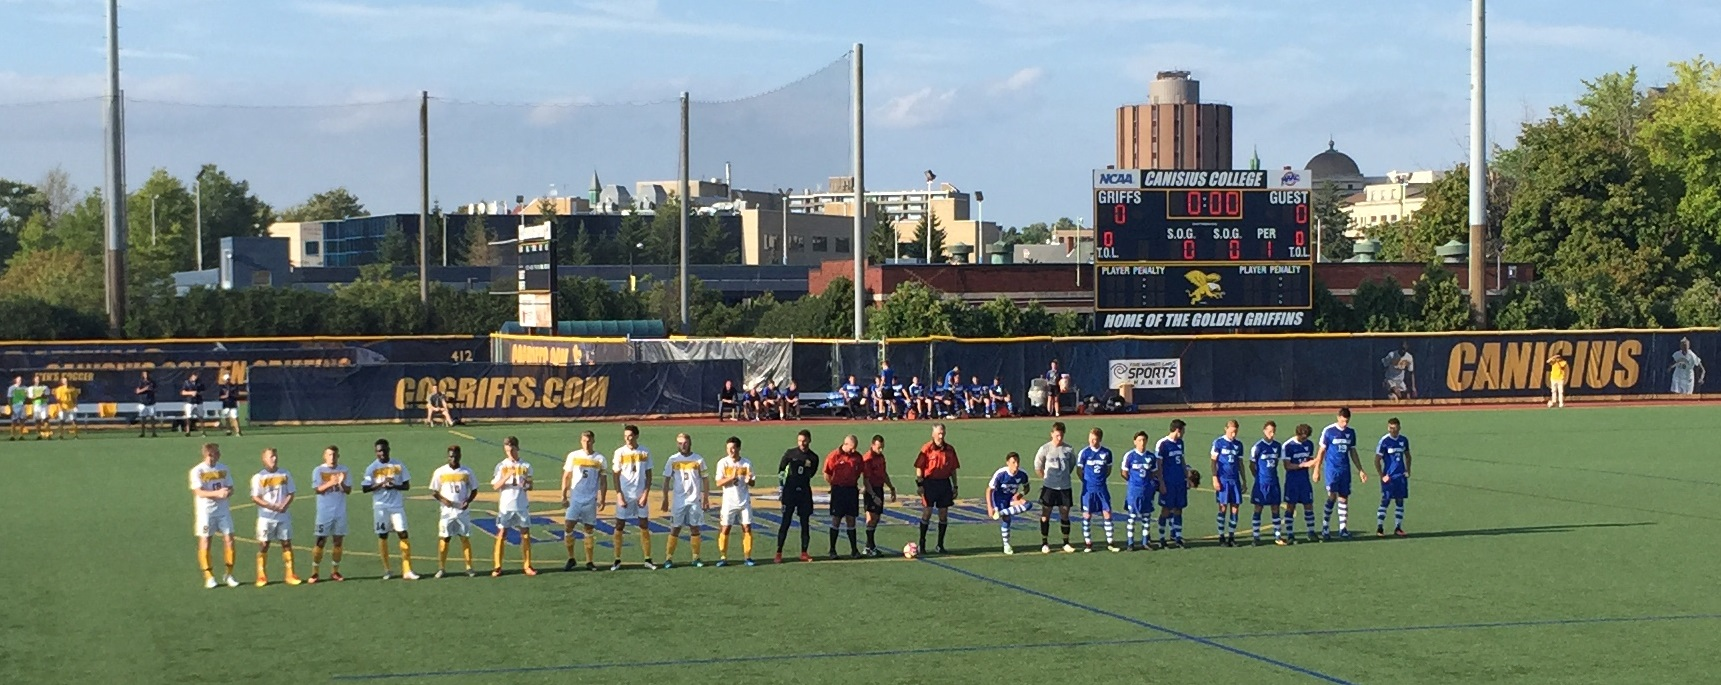 Canisius Golden Griffins, left, faced off against the UB Bulls, in blue, for the Big 4 Shield. (Ben Tsujimoto/Buffalo News)